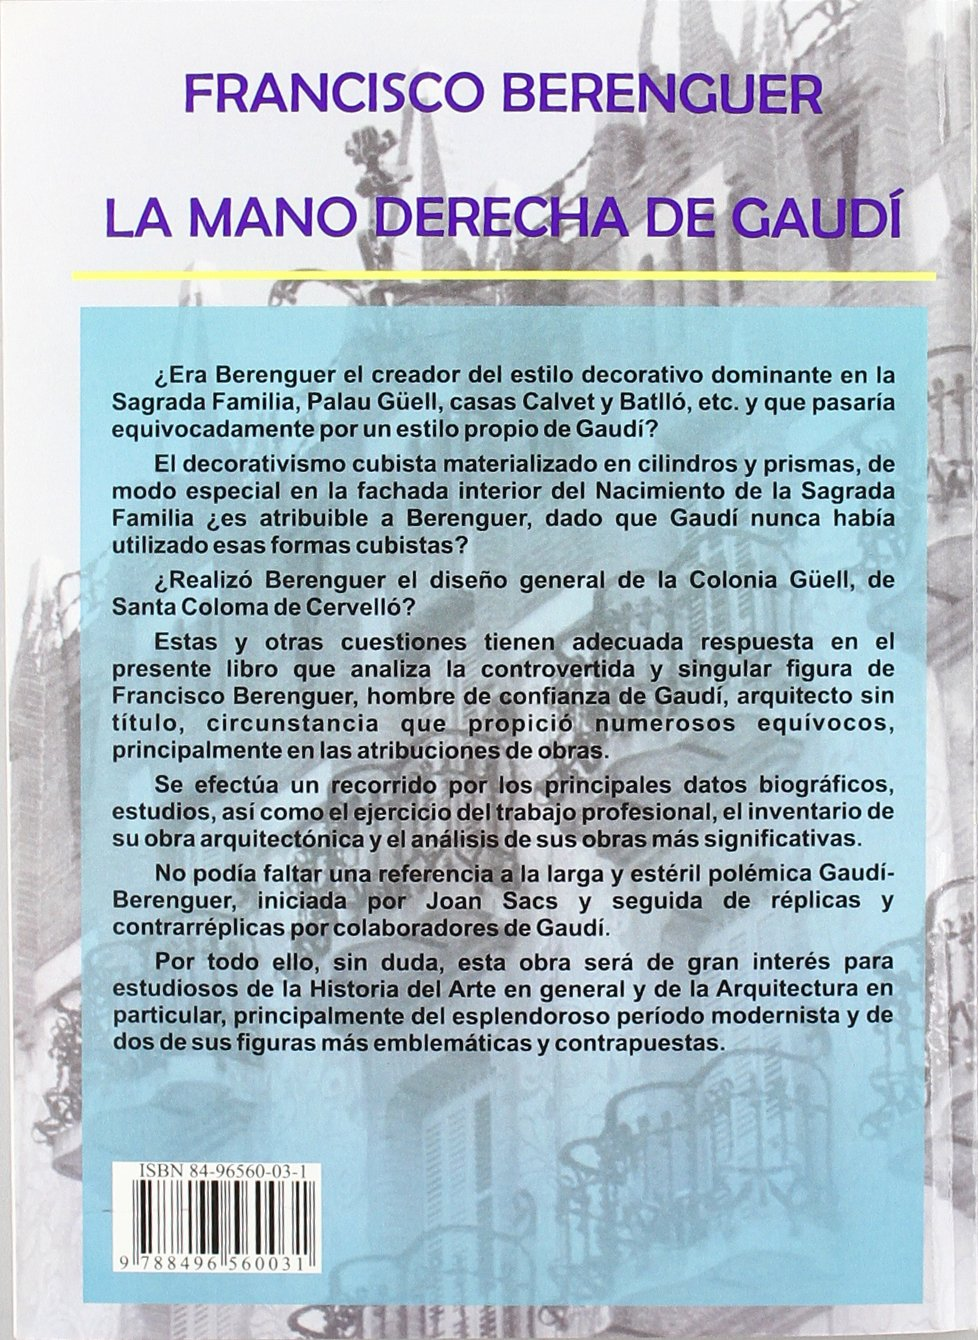 FRANCISCO BERENGUER MANO DCHA DE GAUDI: Jose Luis Ros Perez: 9788496560031: Amazon.com: Books